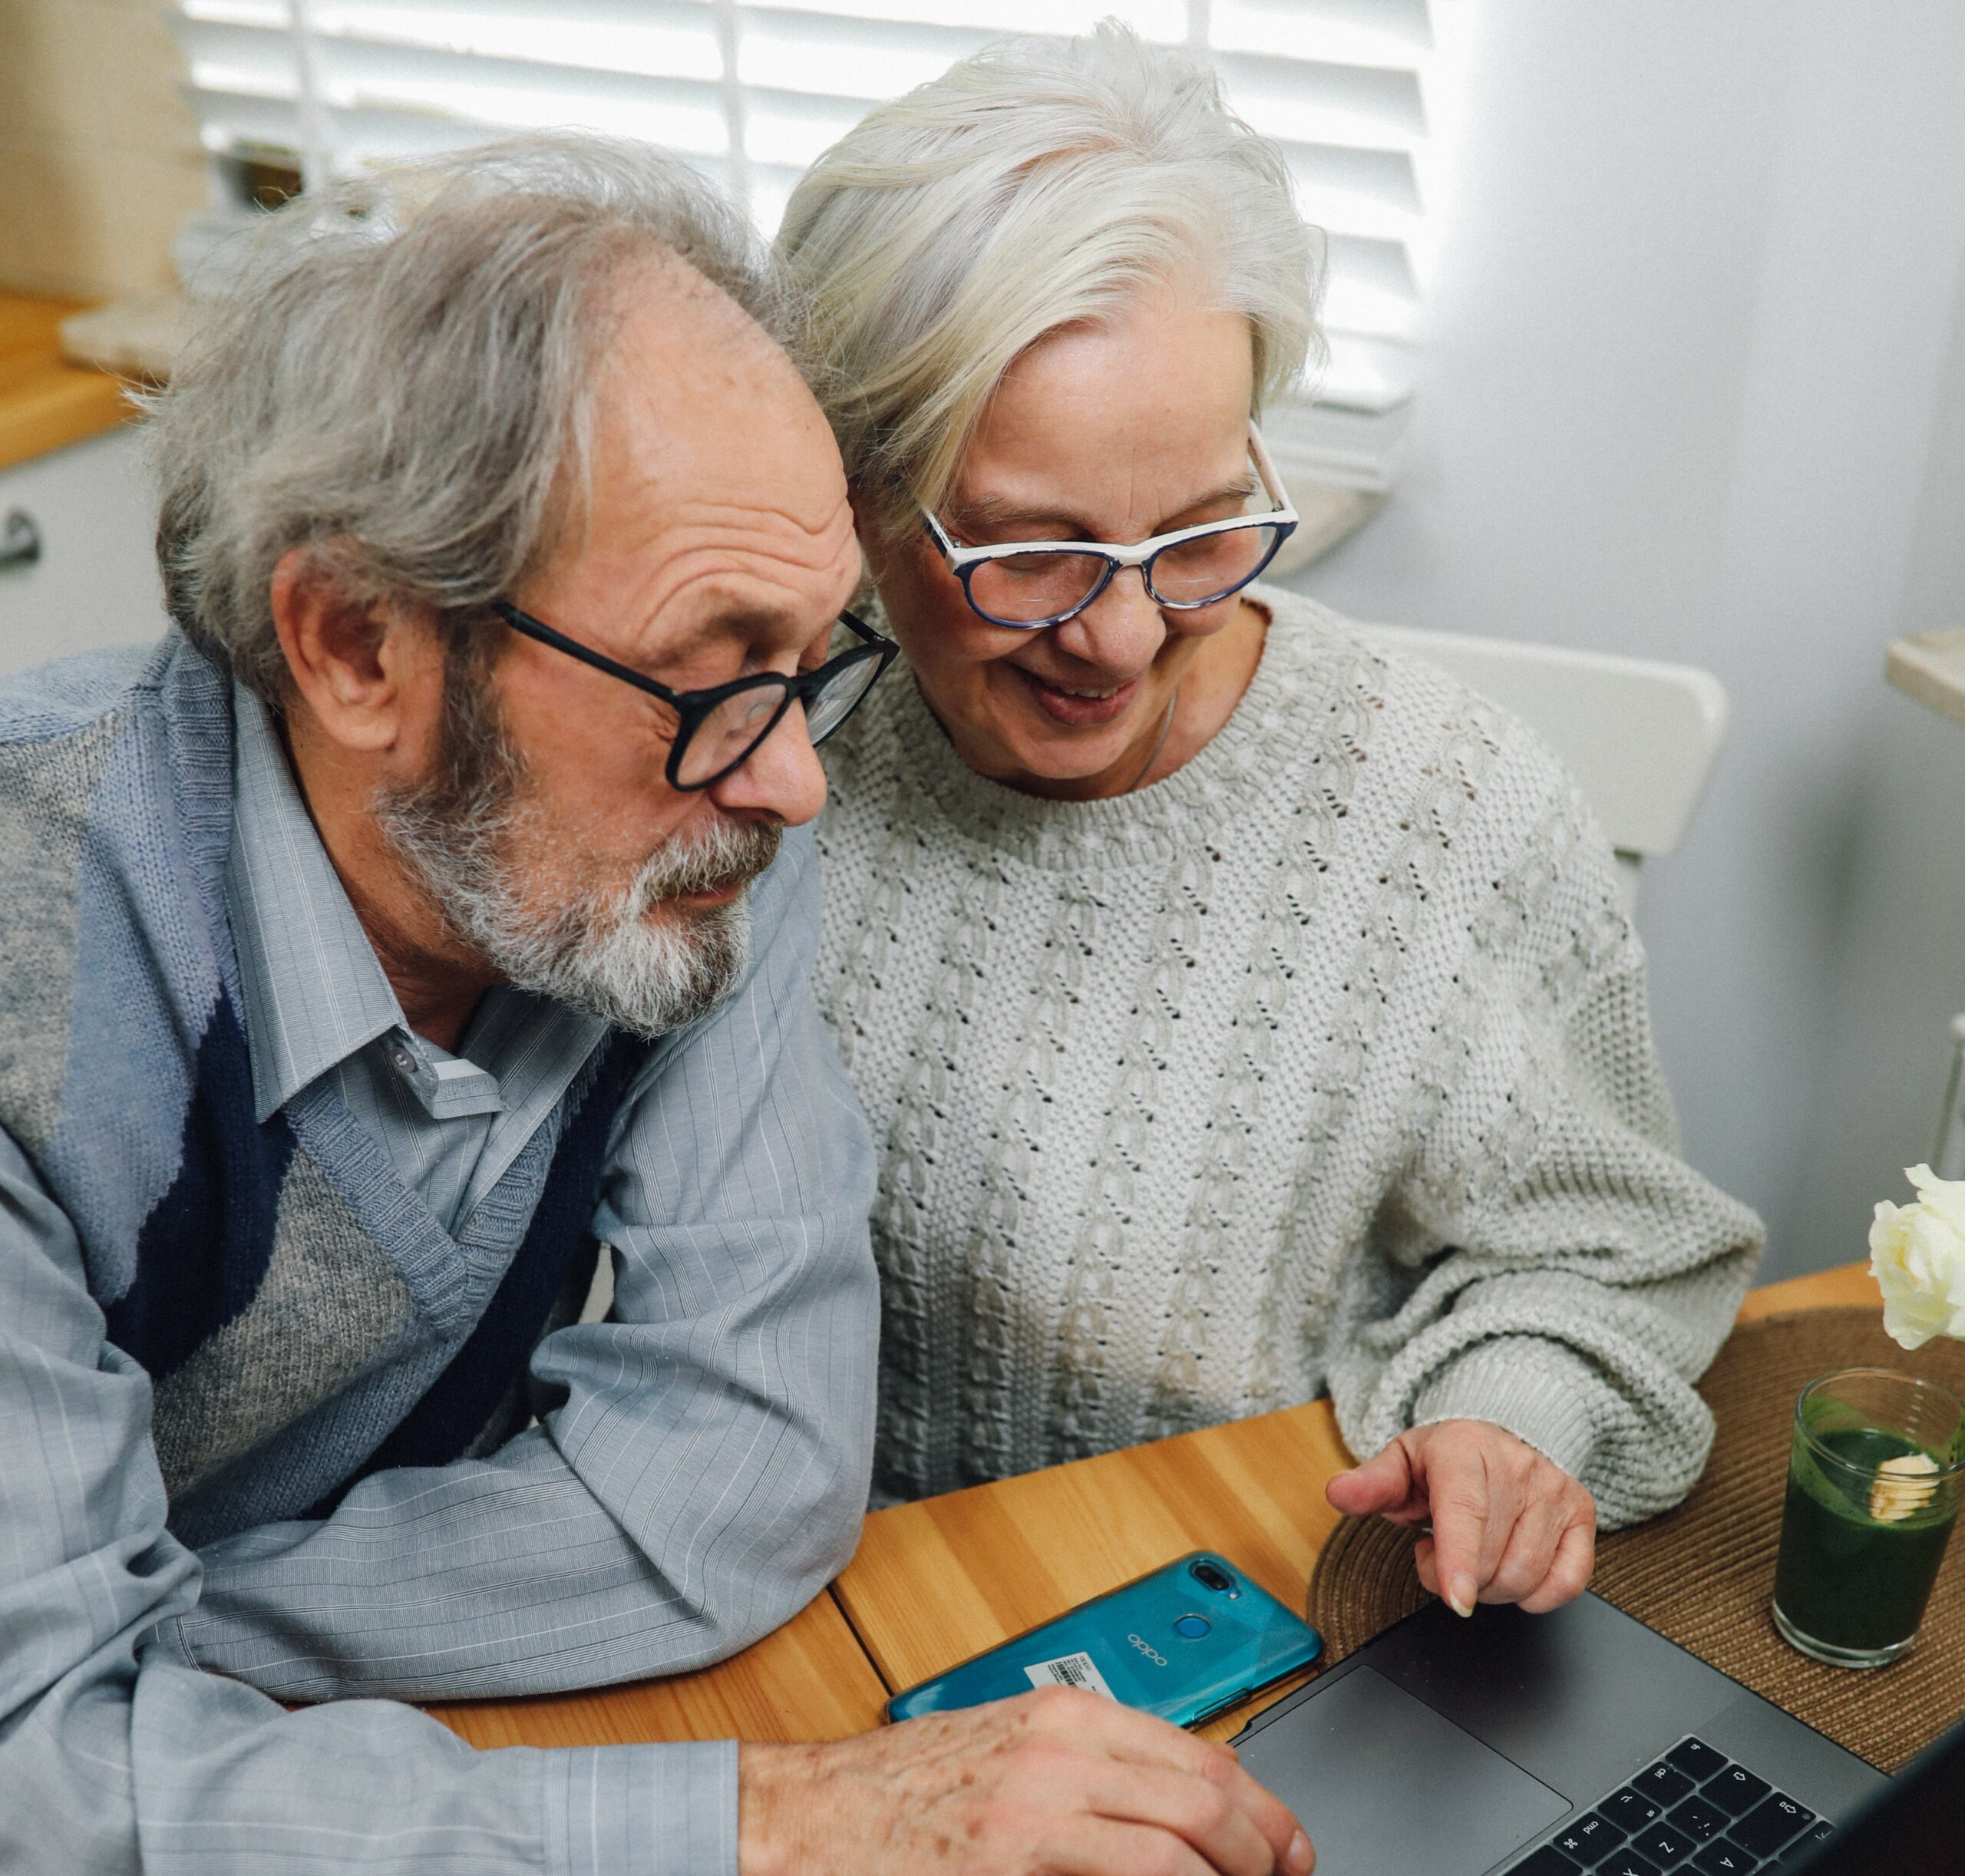 Old couple typing